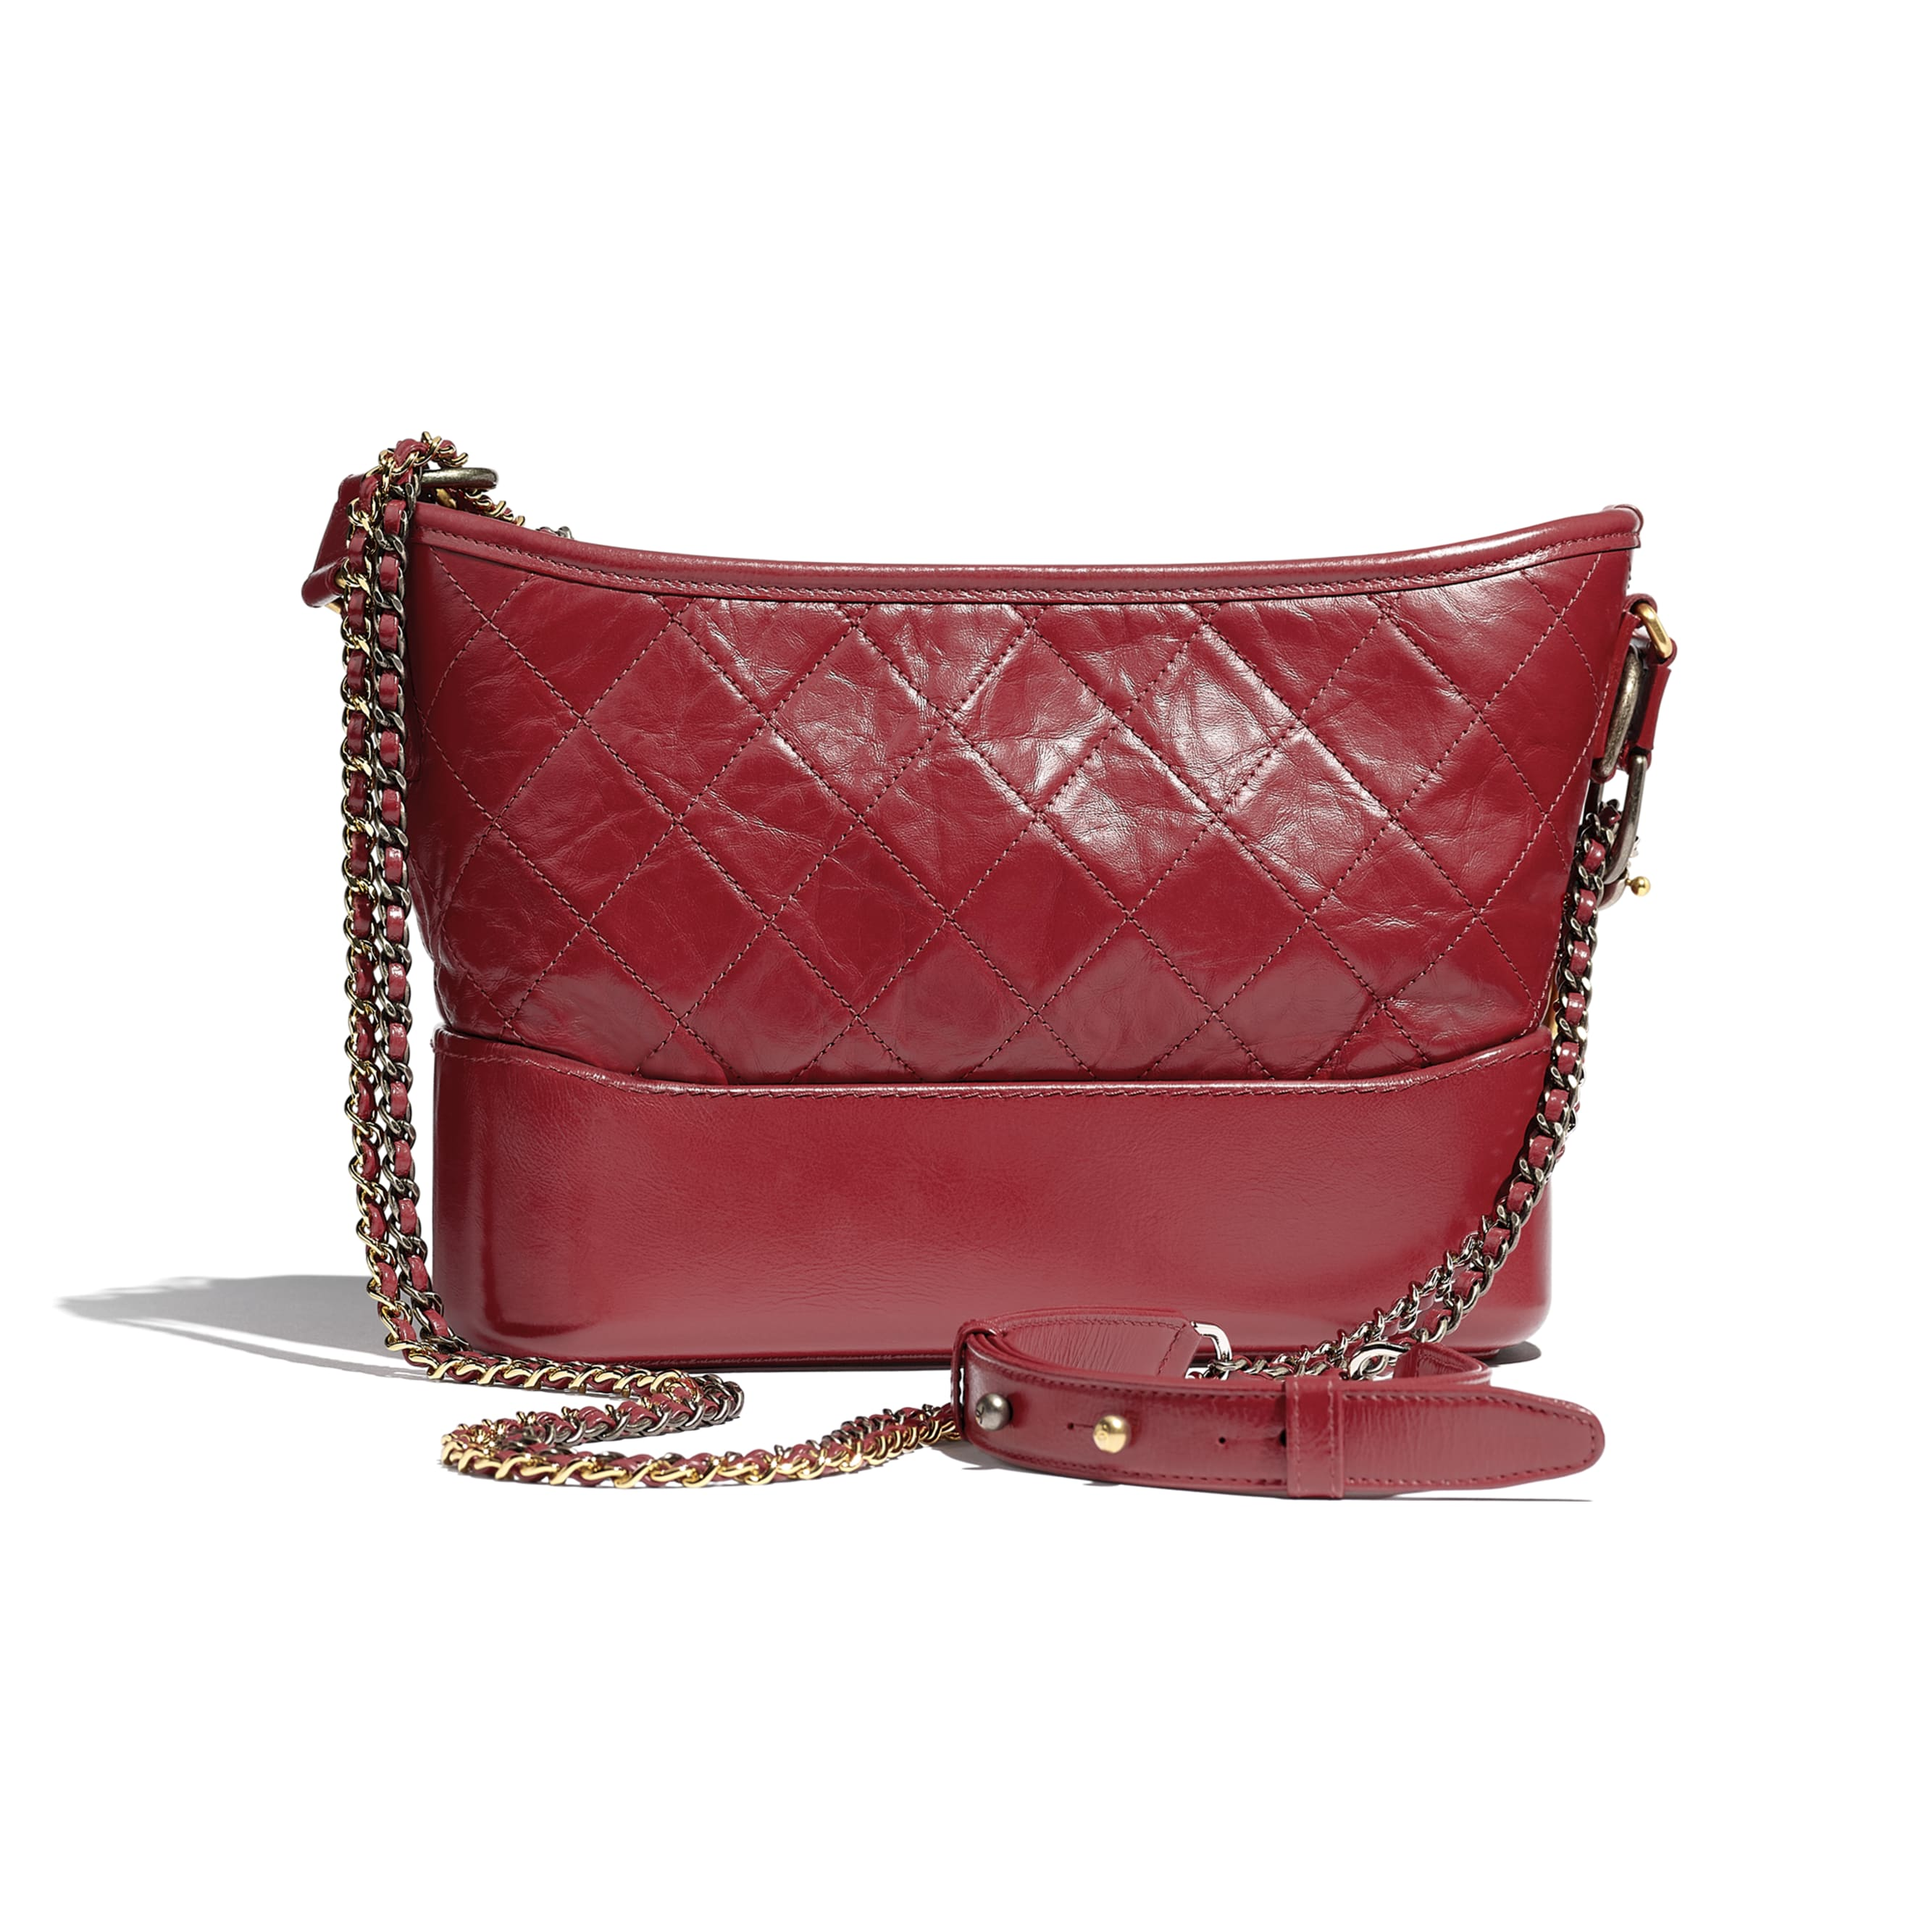 CHANEL'S GABRIELLE Hobo Handbag - Red - Aged Calfskin, Smooth Calfskin, Gold-Tone, Silver-Tone & Ruthenium-Finish Metal - CHANEL - Alternative view - see standard sized version